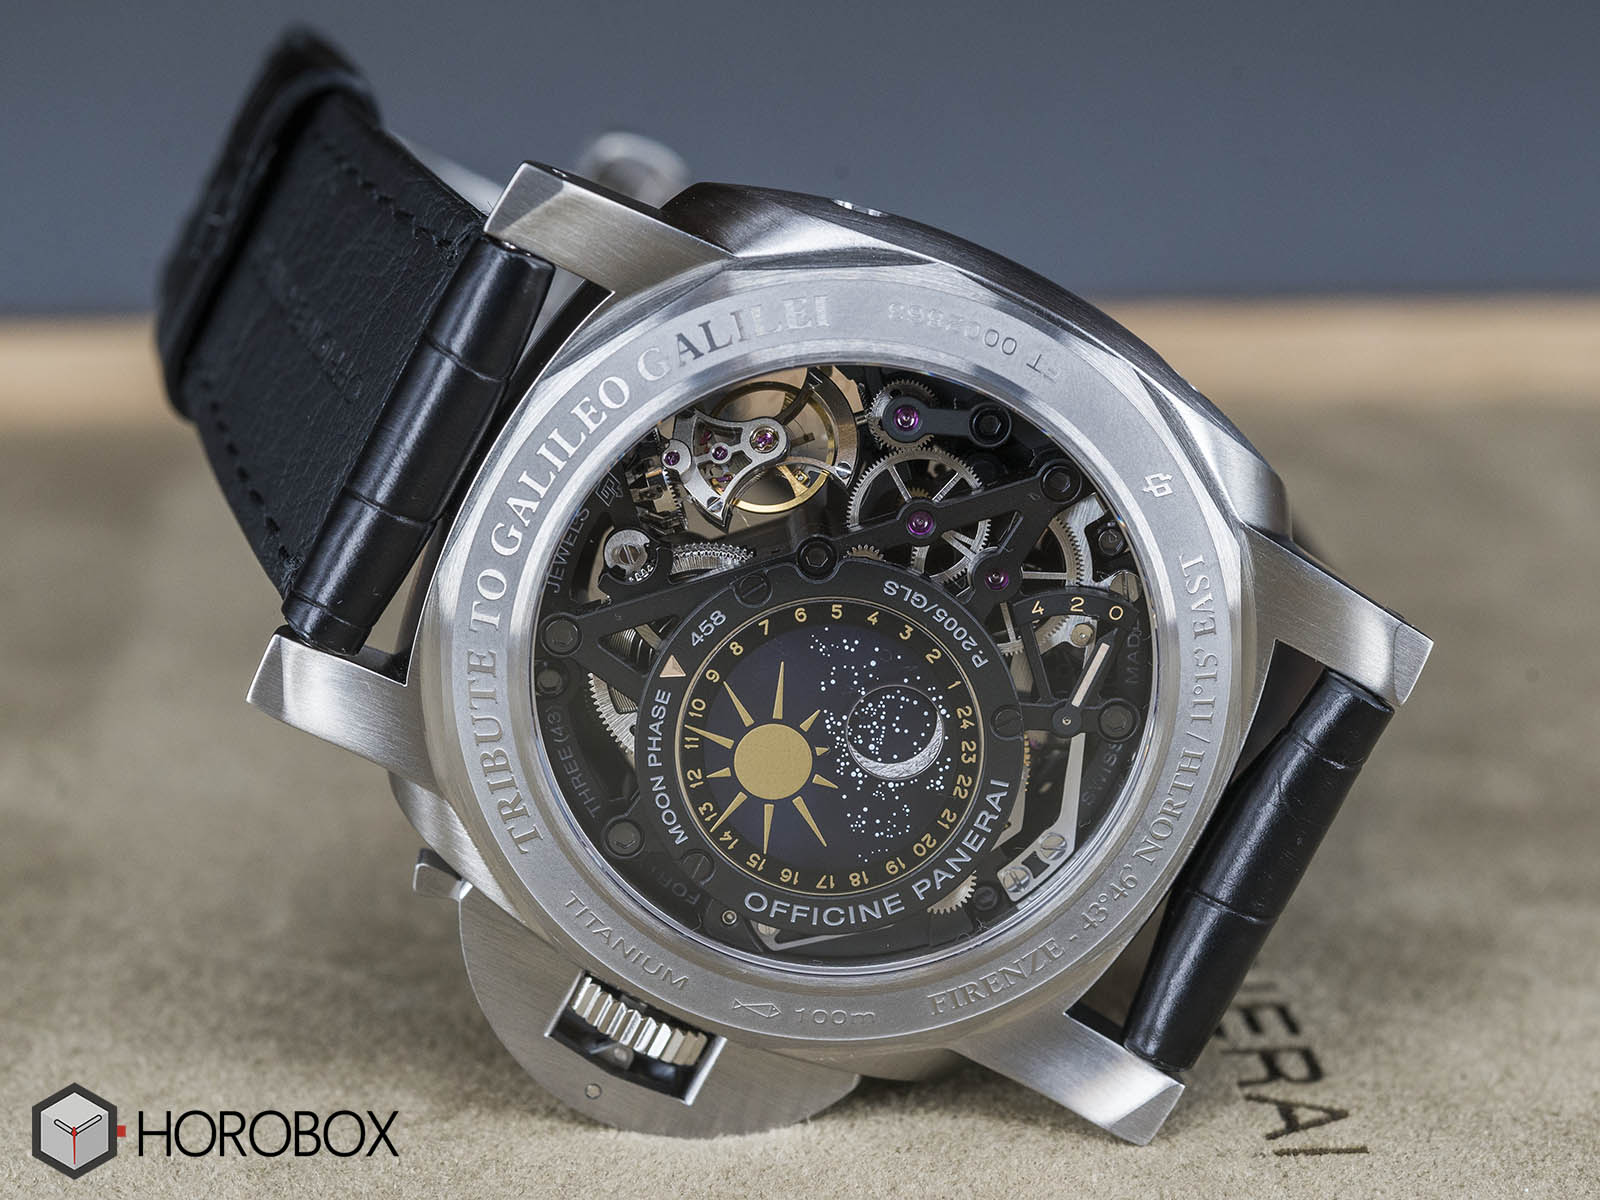 Panerai-L-Astronomo-Luminor-1950-Tourbillon-Moon-Phases-Equation-of-Time-Gmt-Pam00920-7-.jpg